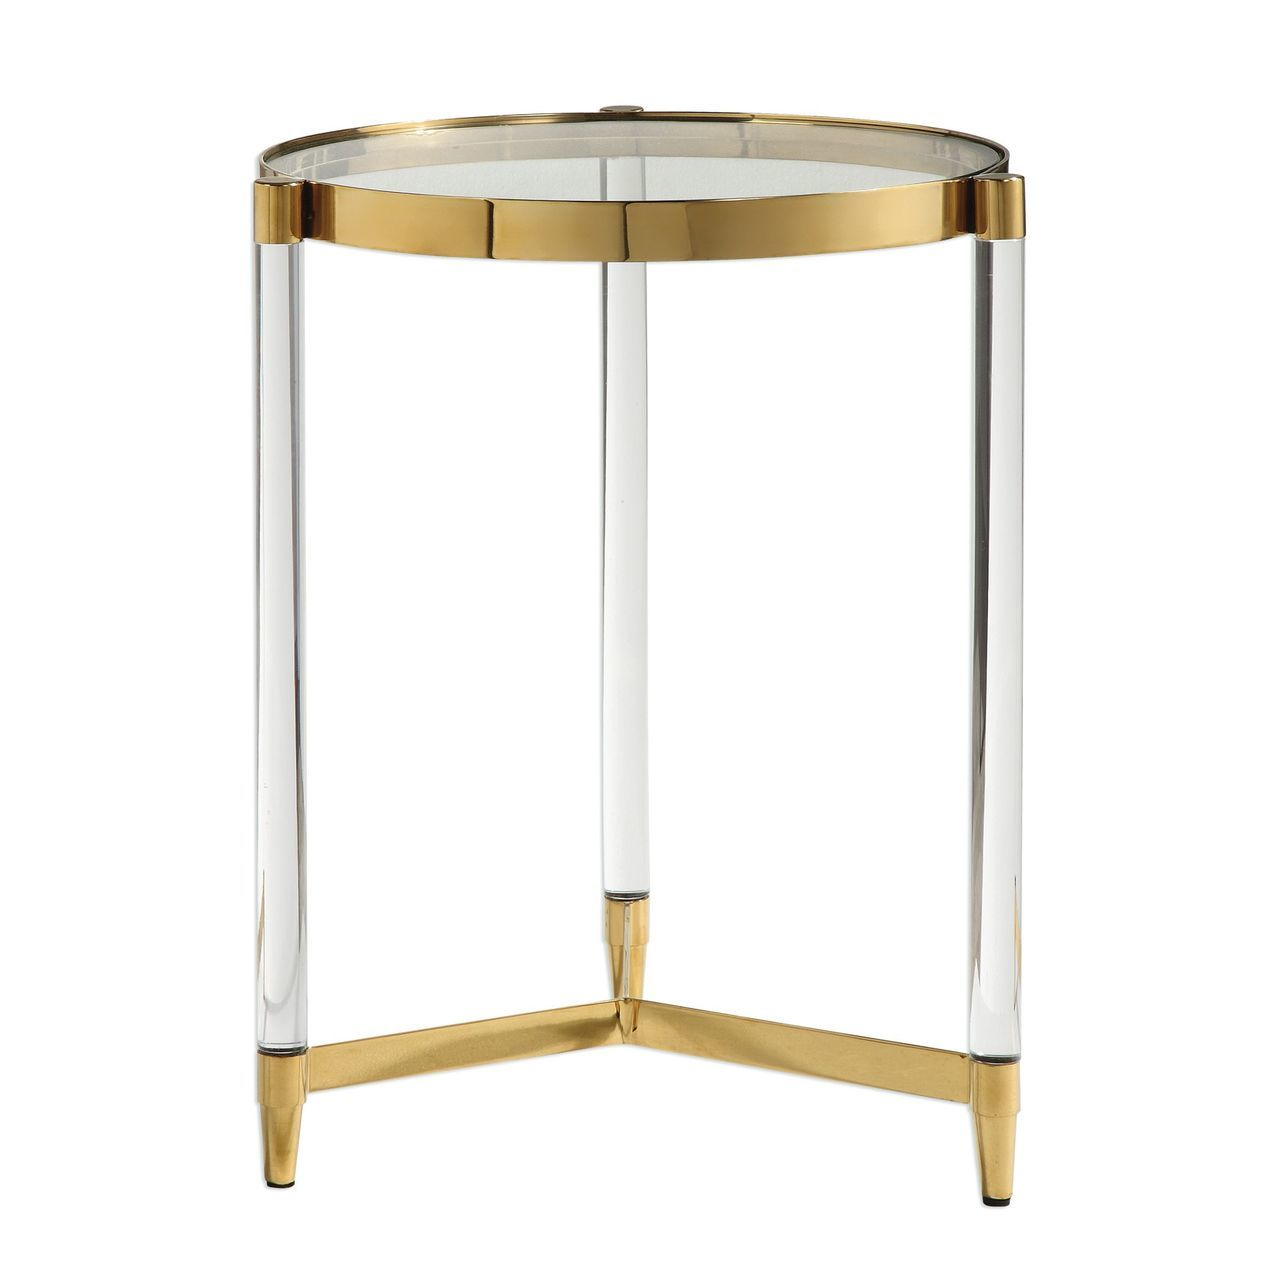 glam modern clear rods glass gold accent table round pedestal side inexpensive legs ott with wheels target end tables wicker coffee top living room chest drawers mini abacus lamp